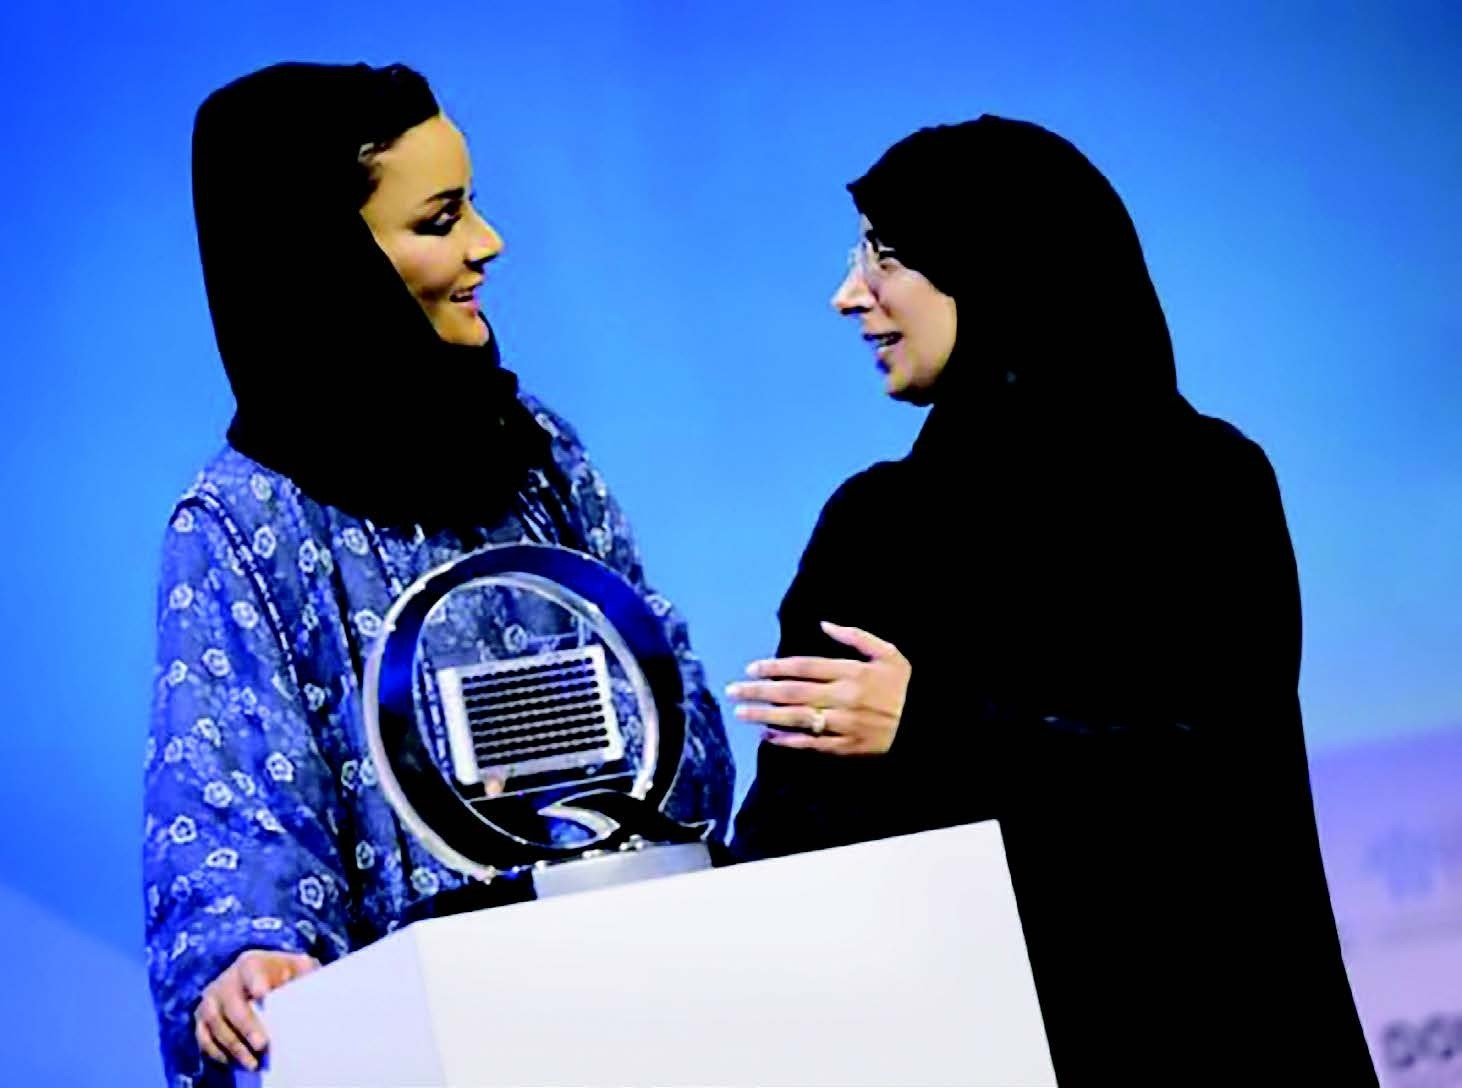 Dr. Hanan Mohamed al-Kuwari (right), Qatar's minister of public health, presents a model of the Q-chip to Her Highness Sheikha Moza bint Nasser, chairperson of the Qatar Foundation, at the World Innovation Summit for Health in November 2018.